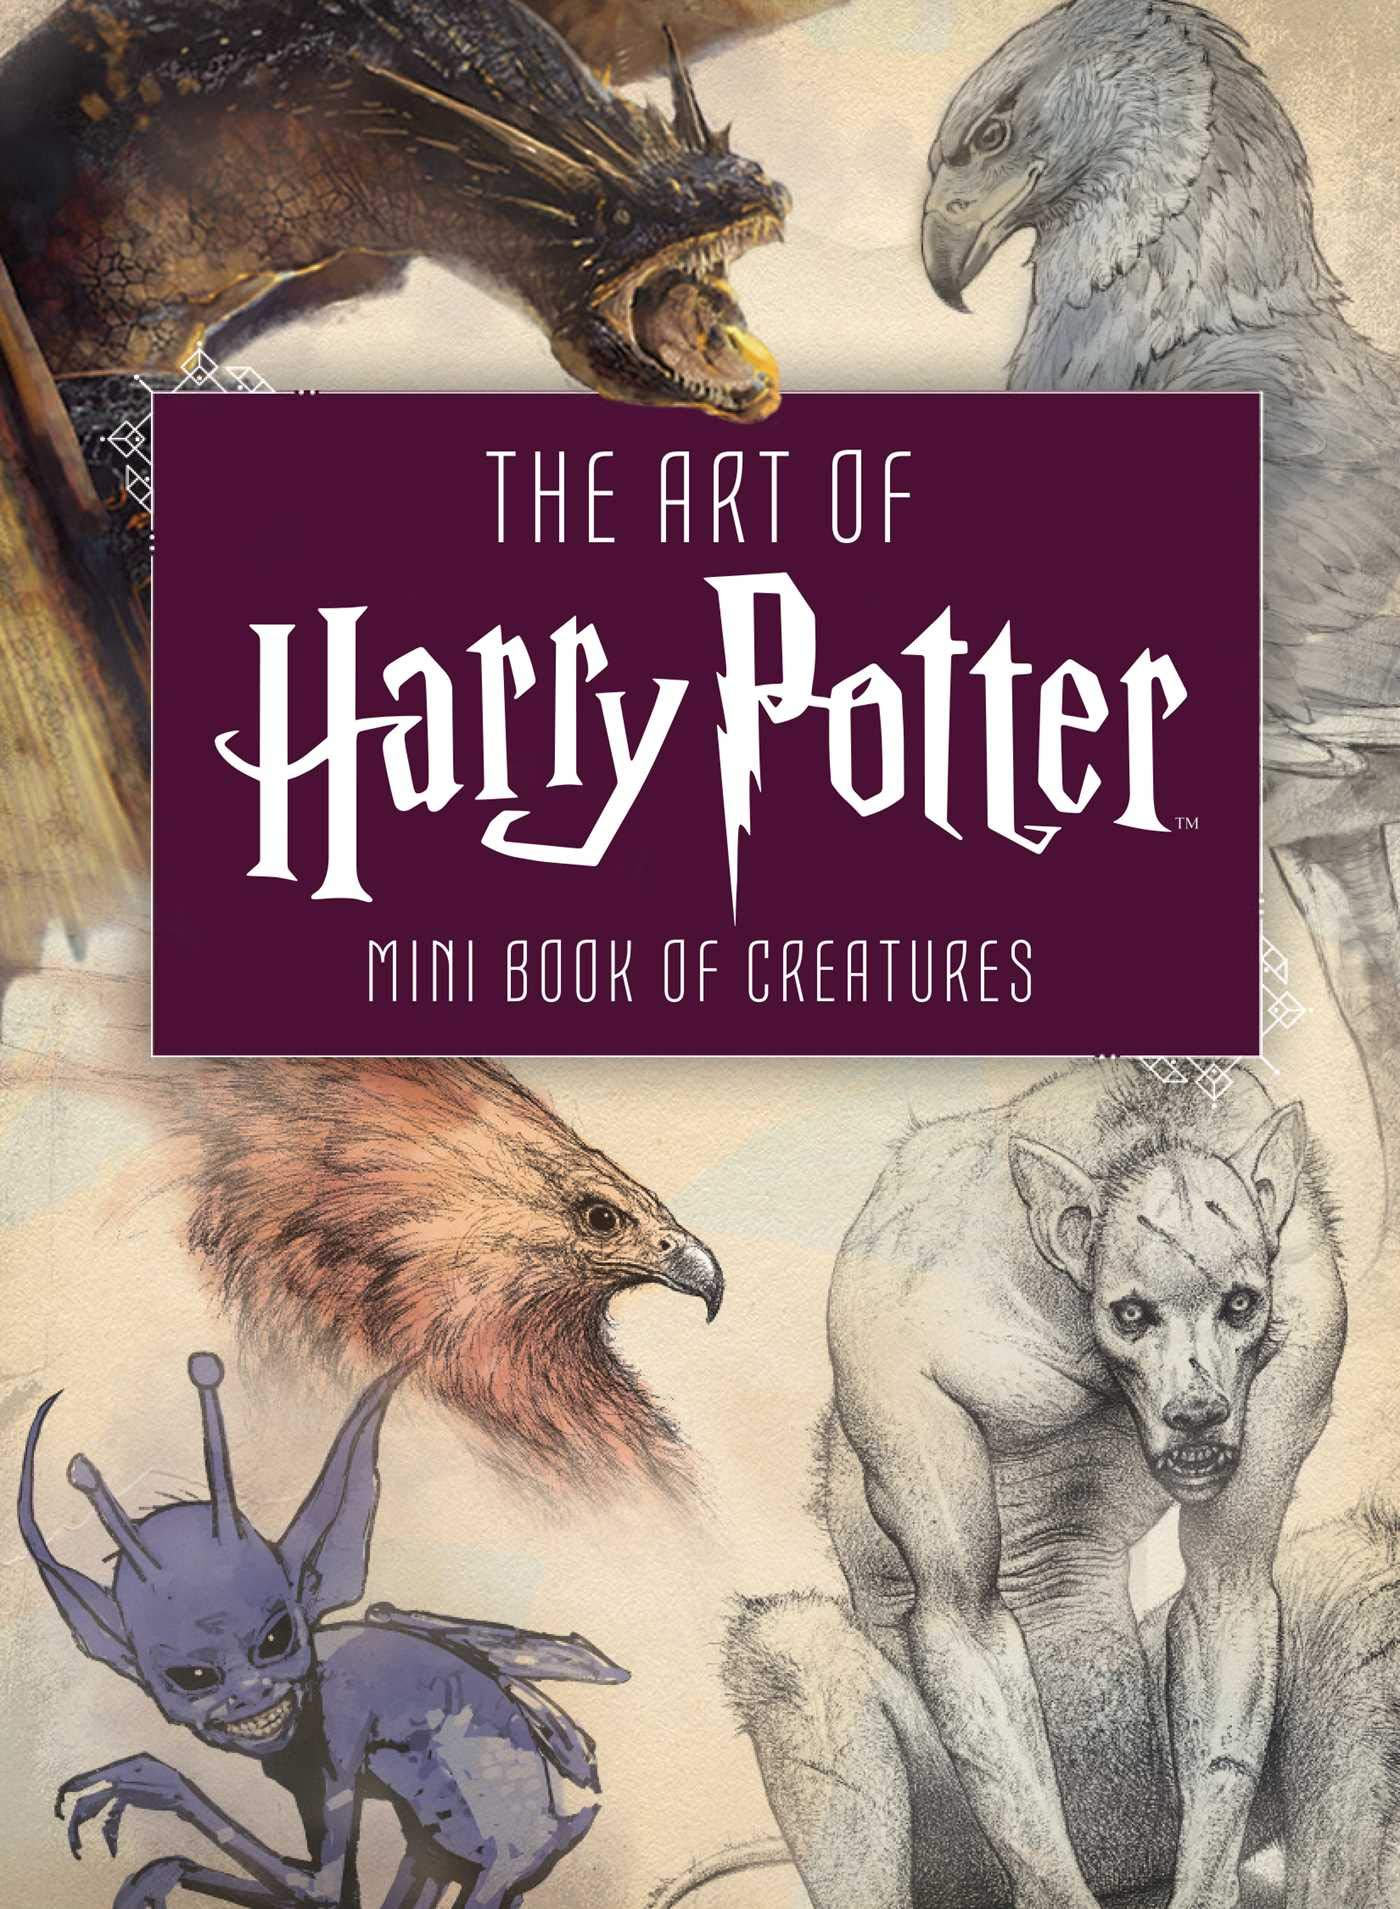 The Art of Harry Potter: Mini Book of Creatures Mini Books: Amazon.es:  Insight Editions: Libros en idiomas extranjeros